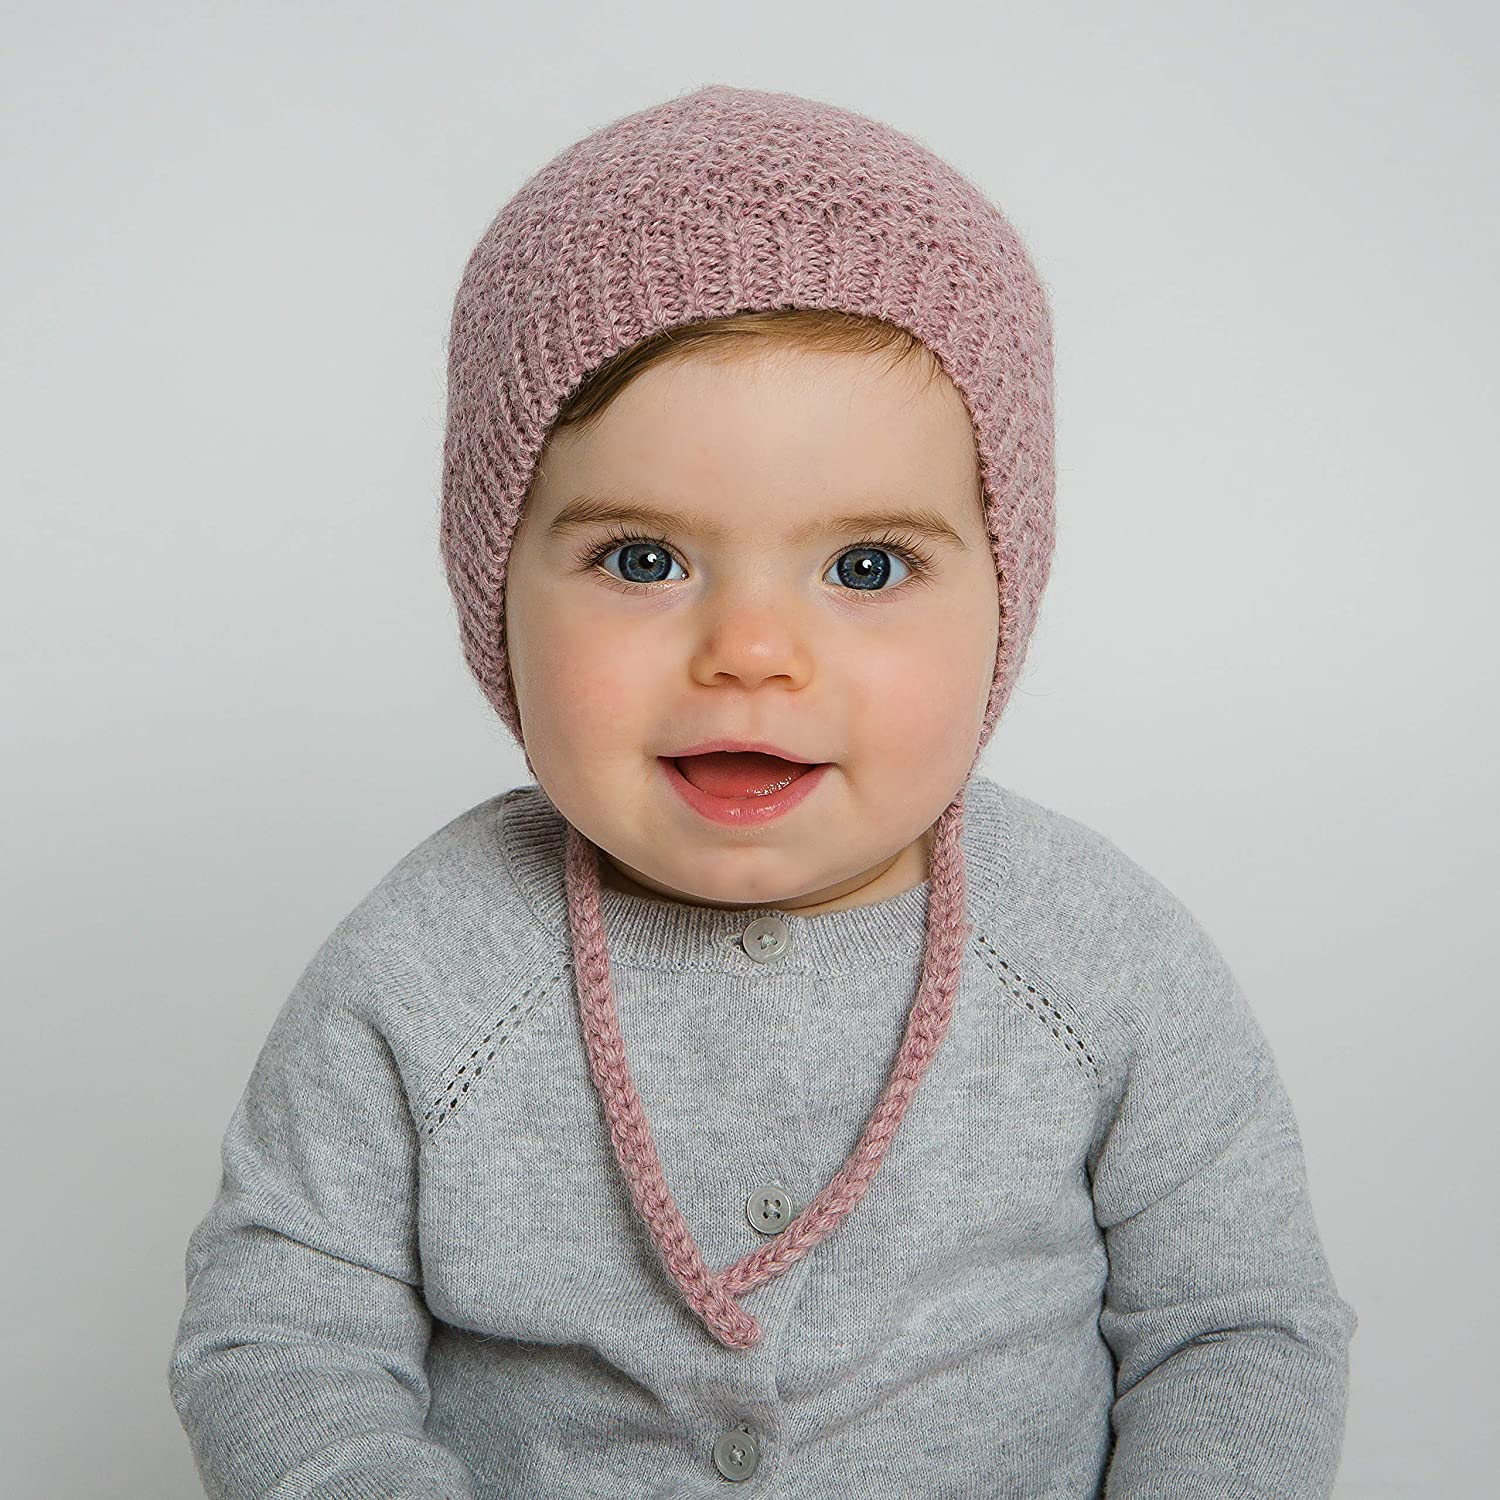 Hand-Knit 100% Organic Alpaca Wool | Ica Bonnet Hat (Pink) by Surhilo | Soft, Quality, Hypoallergenic | The Perfect and Eco-Friendly Way to Keep Your Baby and Toddler Cozy and Comfortable